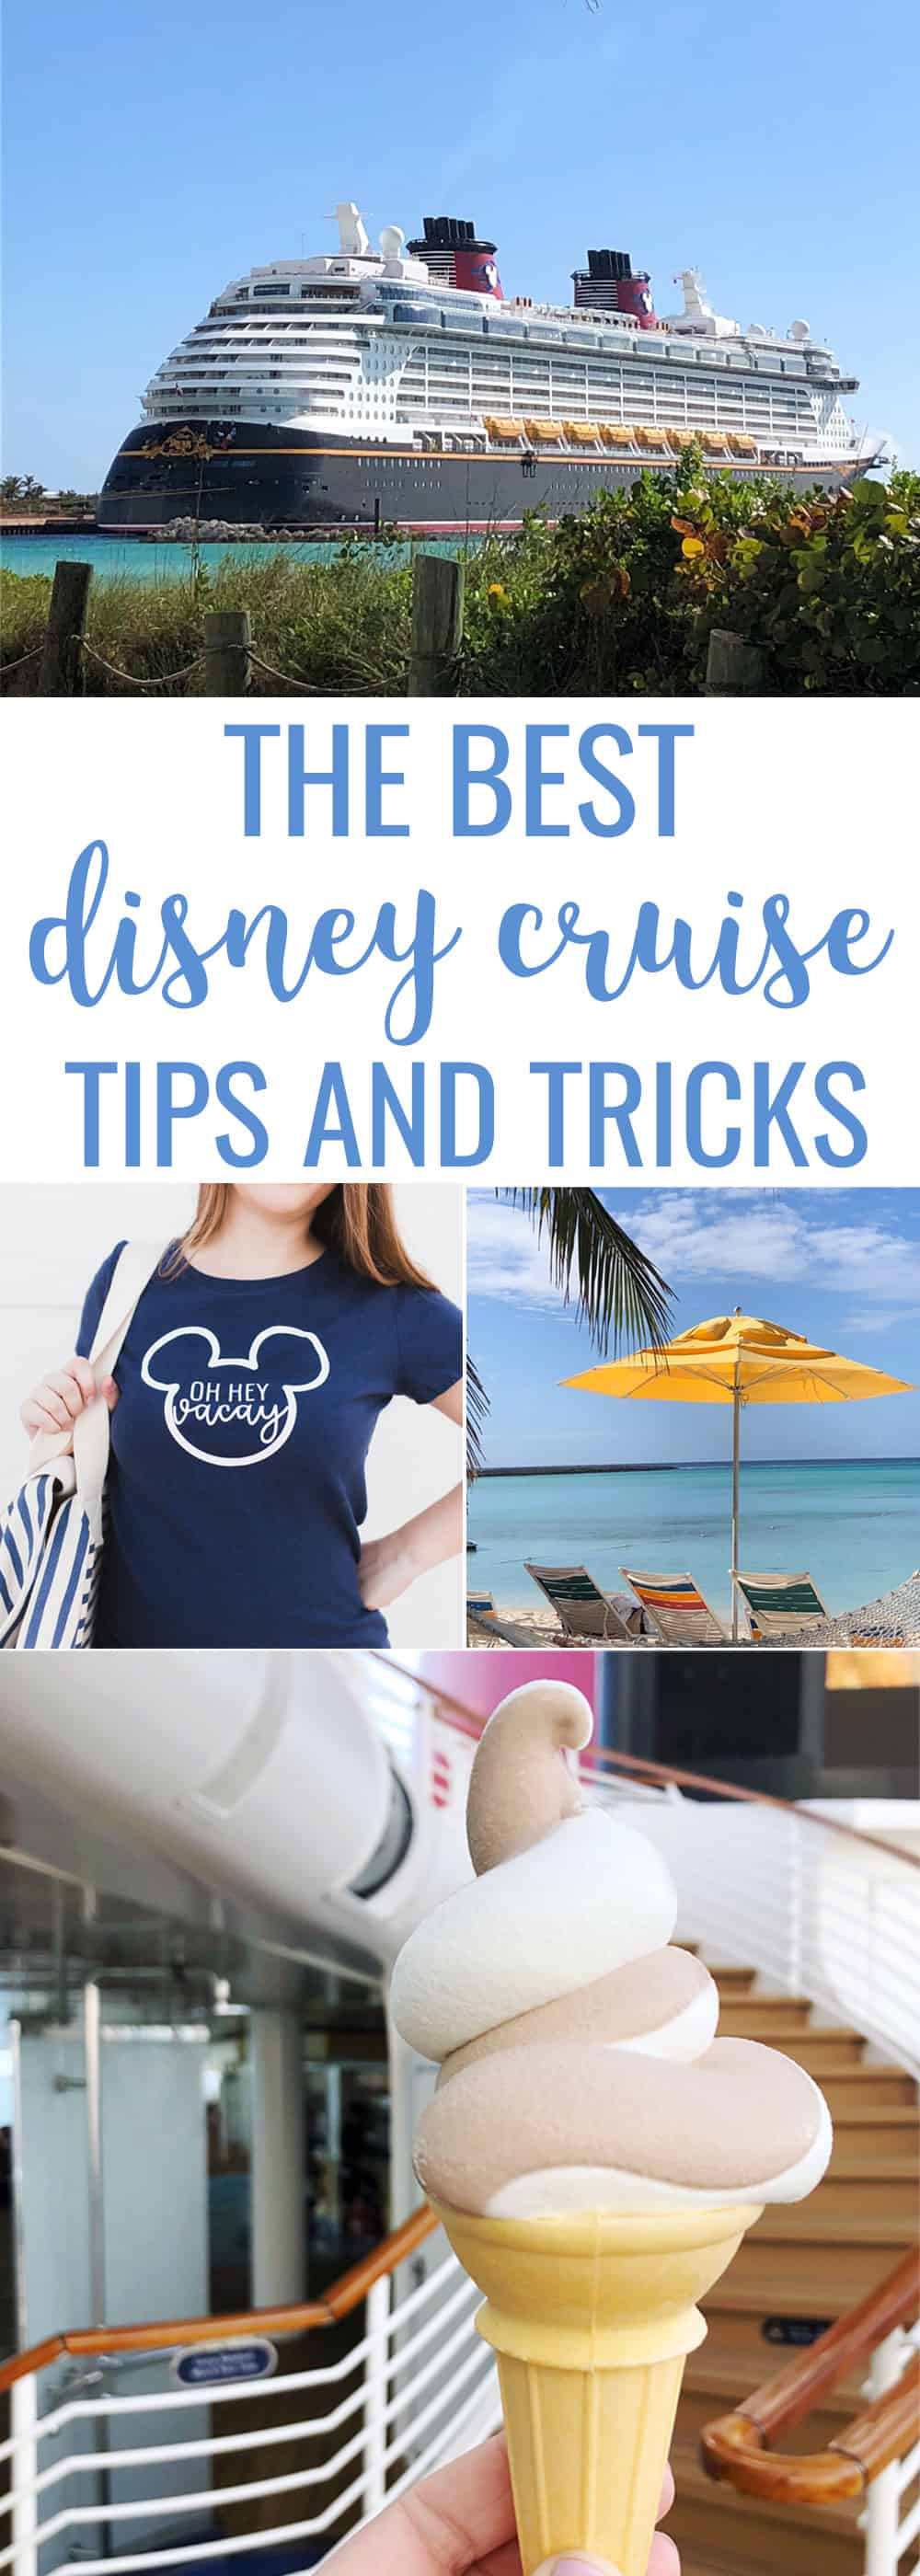 The Best Tips for Disney Cruise and info about the food, activities and Castaway Cay!